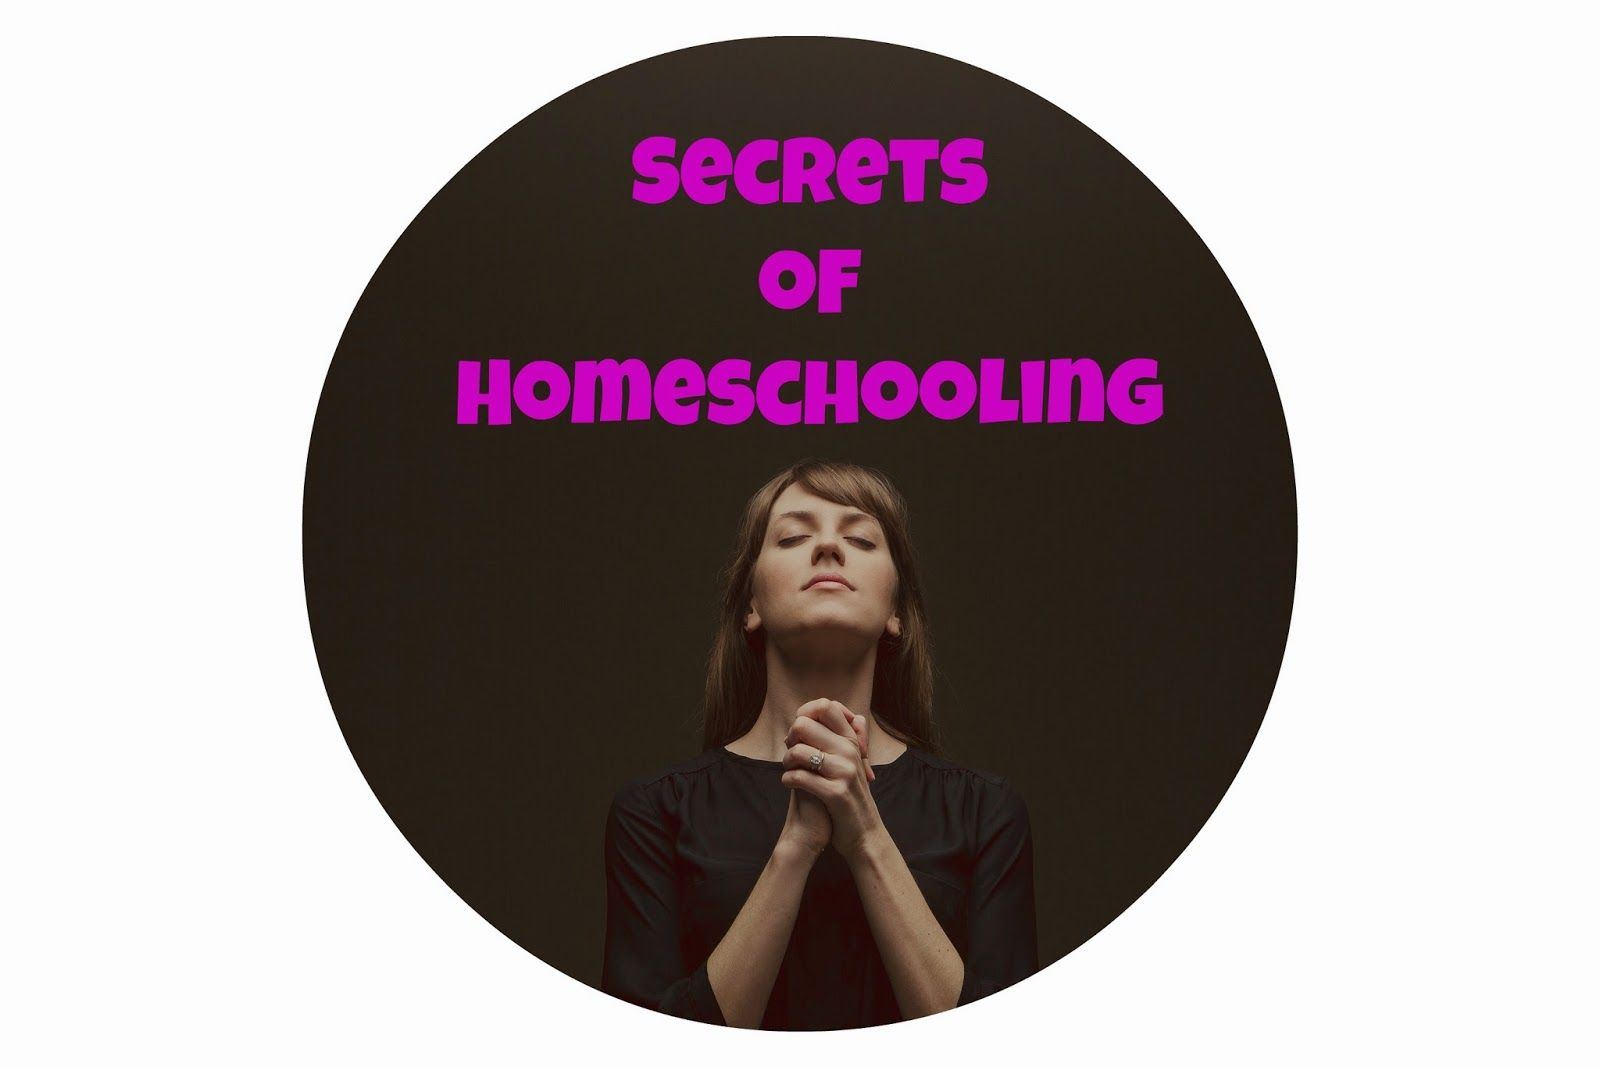 Secrets of #Homeschooling - Getting started, Curriculum Ideas, and Encouragement